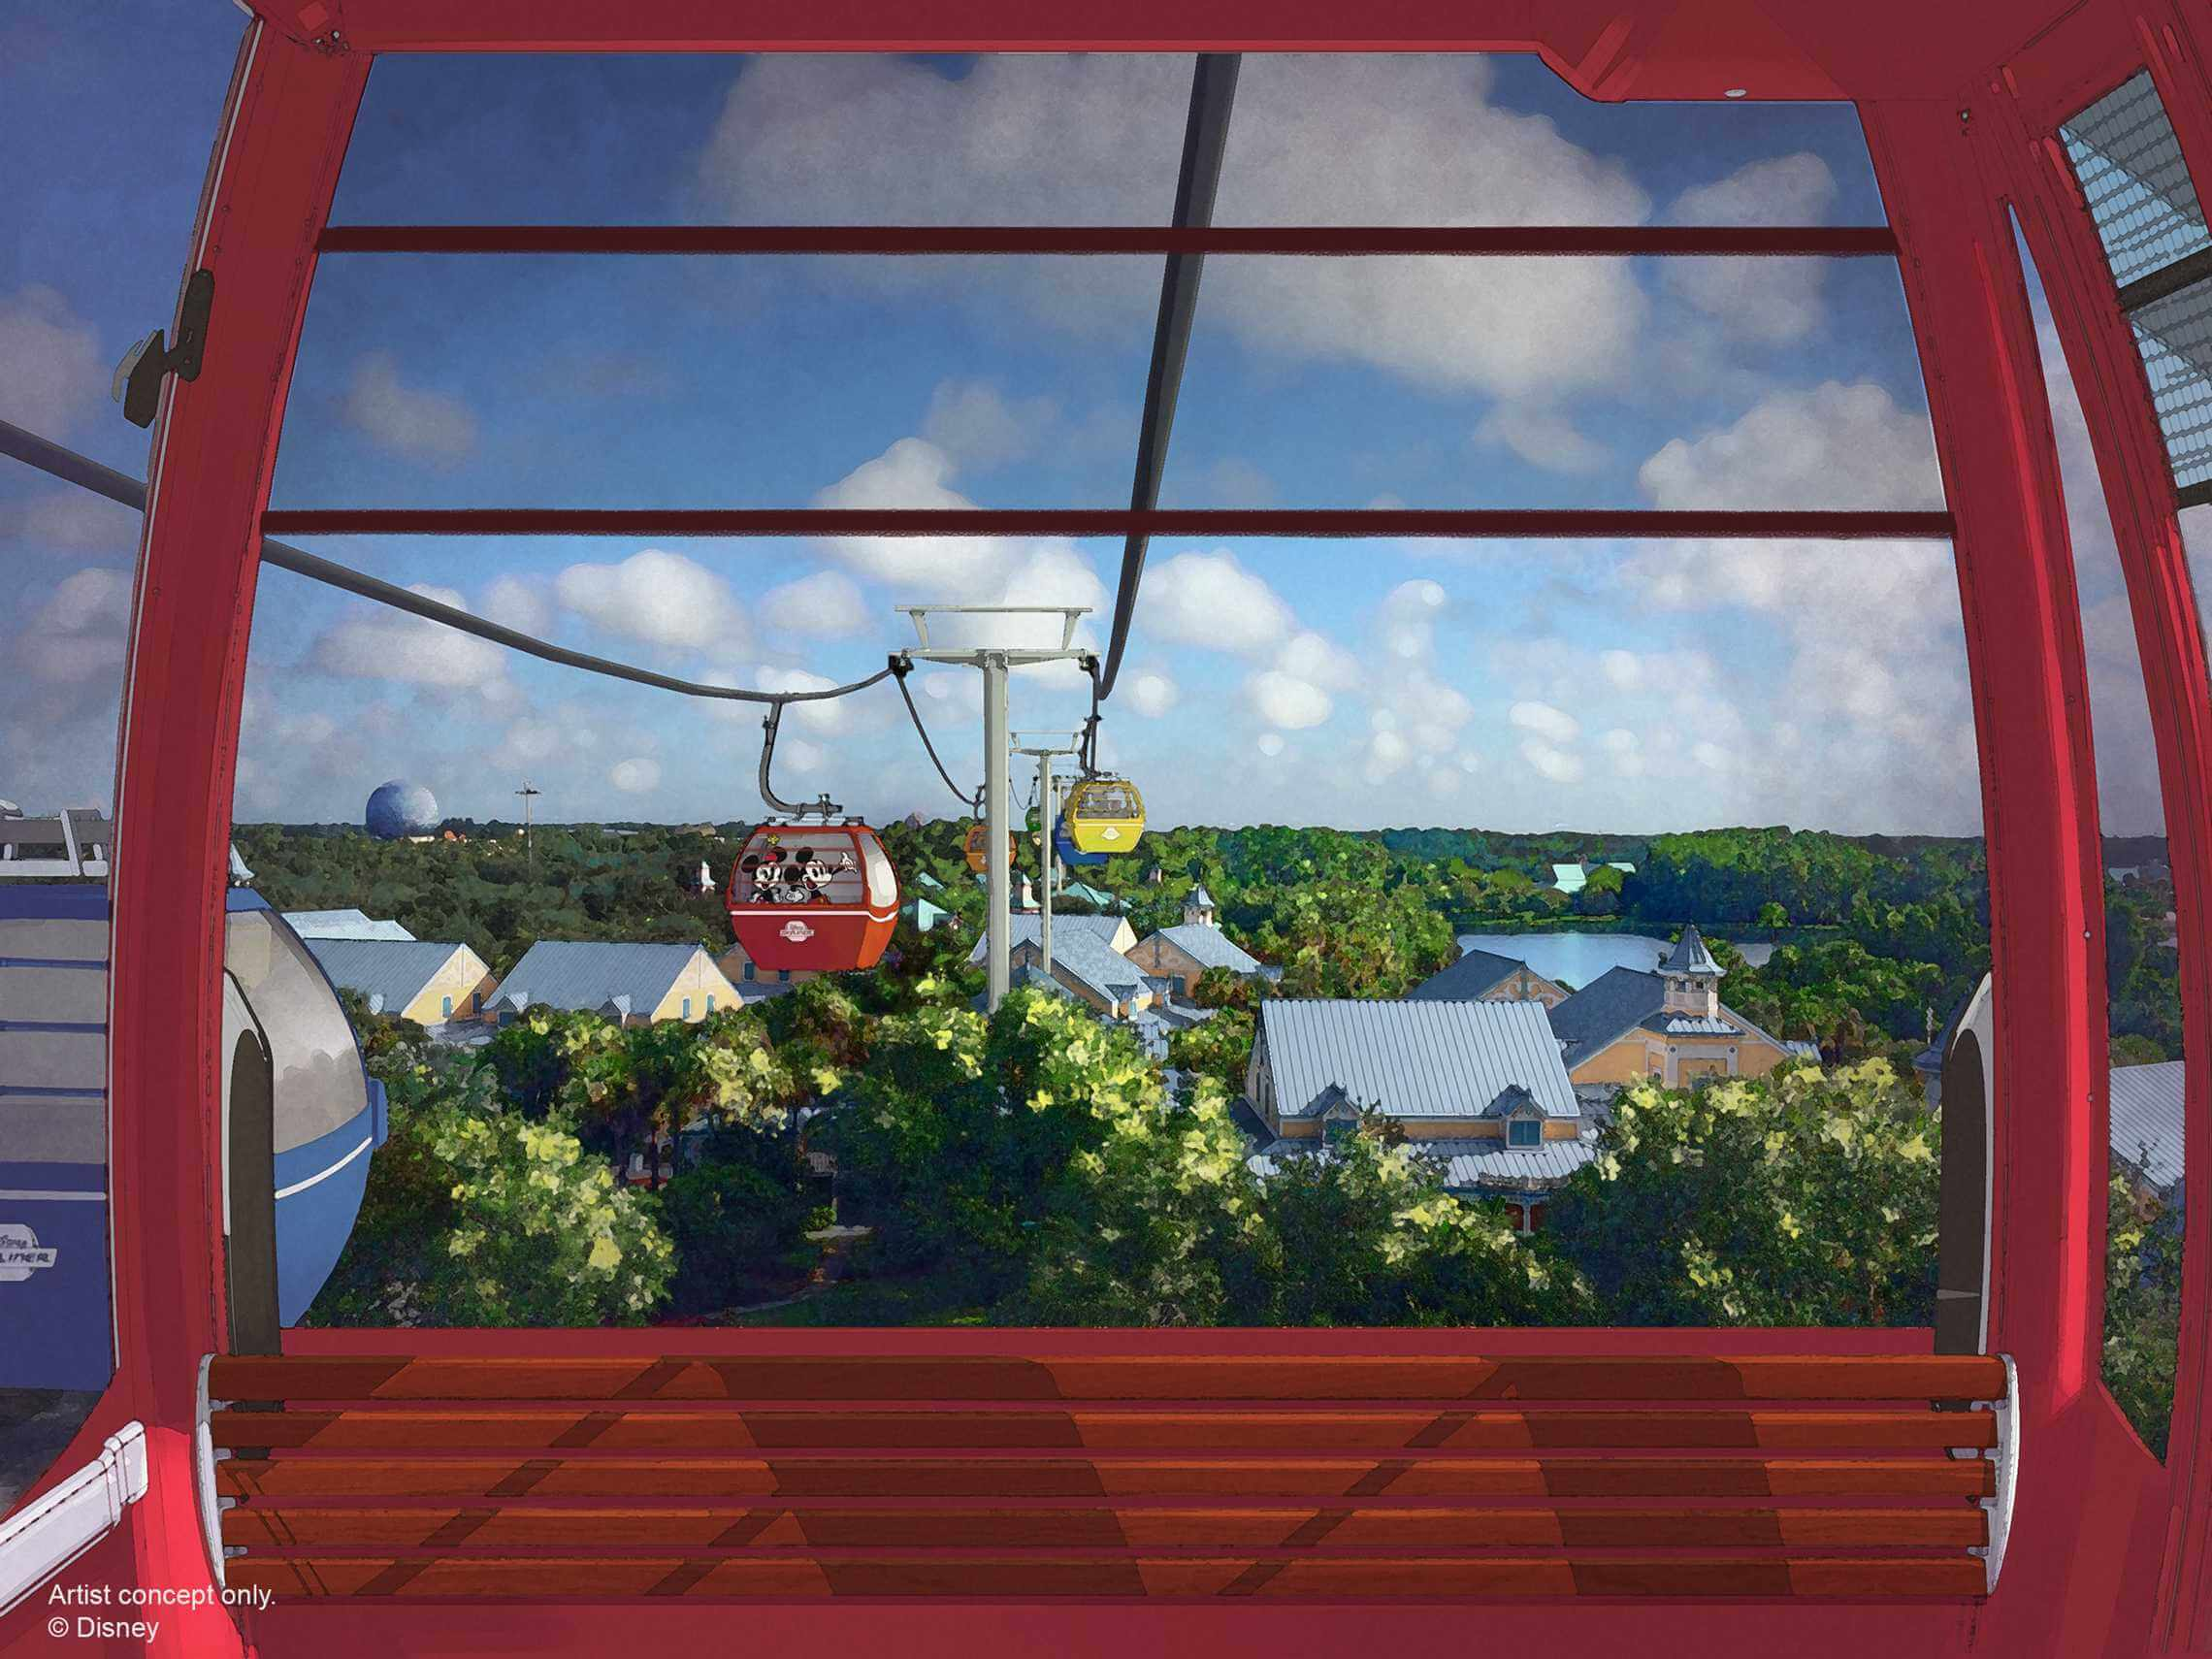 Skyliner Opening Timeframe, Coronado Springs Name Announced